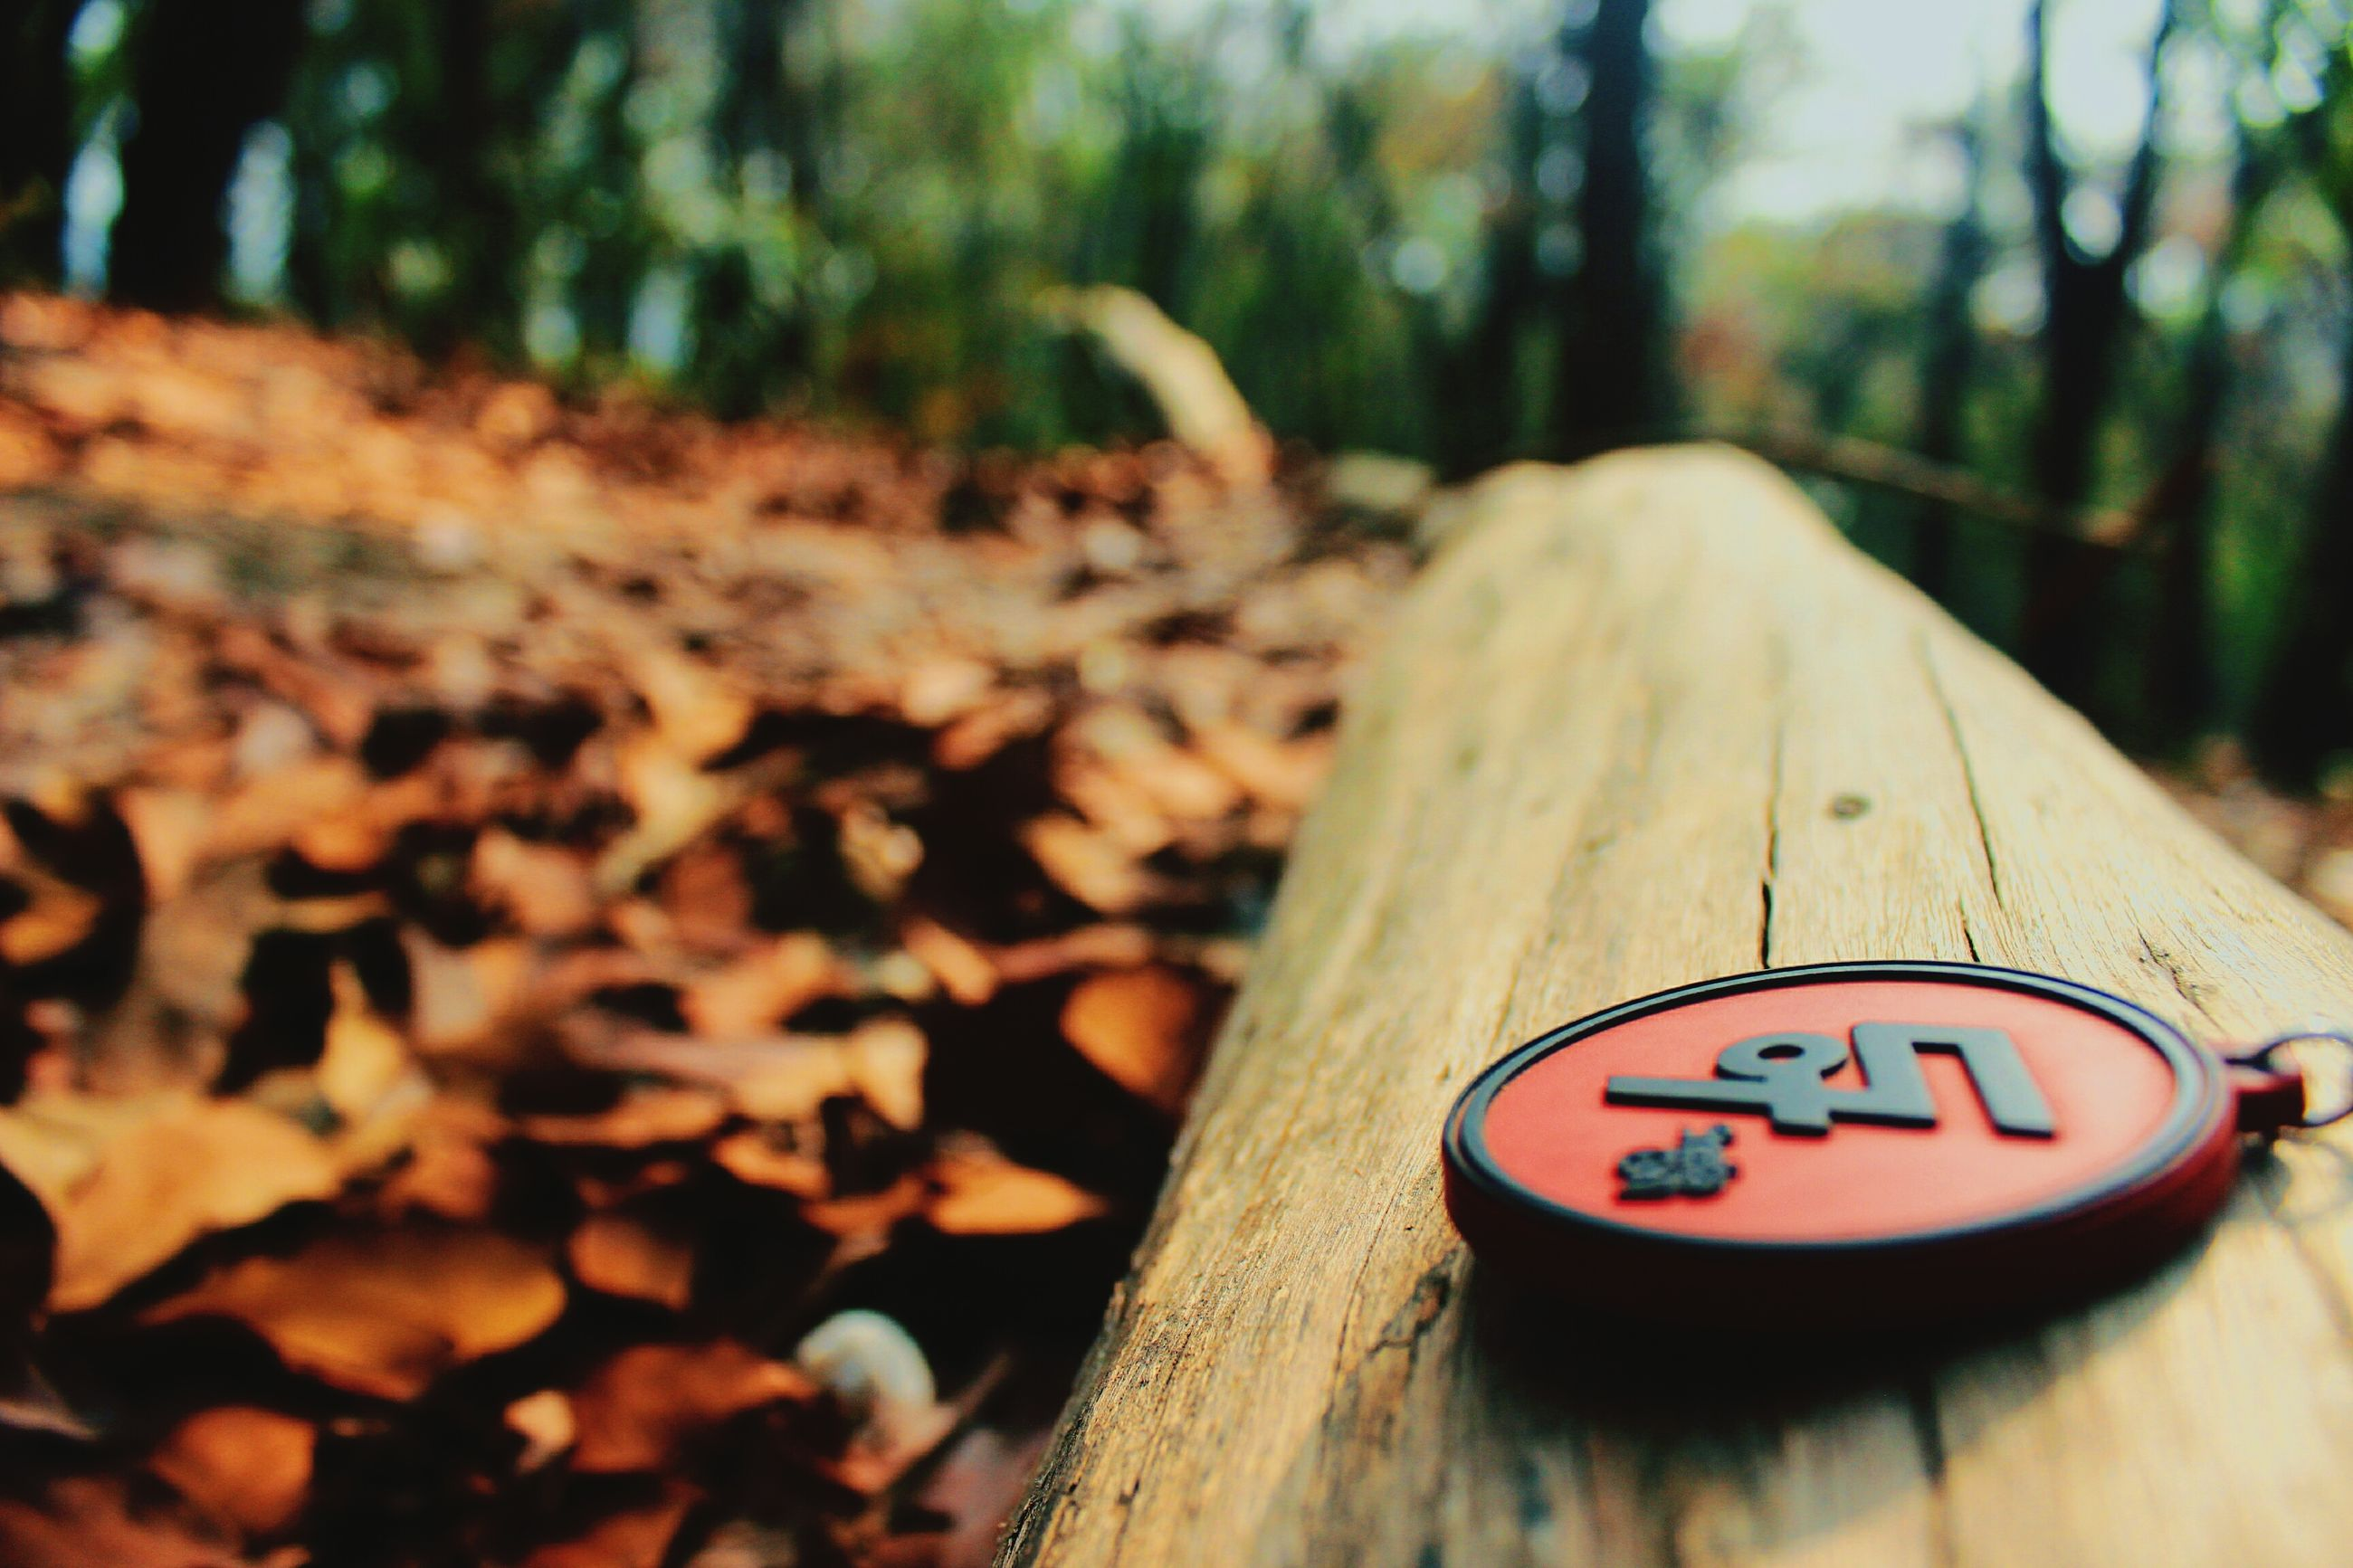 focus on foreground, close-up, text, selective focus, wood - material, communication, tree, western script, single object, forest, still life, day, no people, wooden, tree trunk, outdoors, metal, nature, wood, number